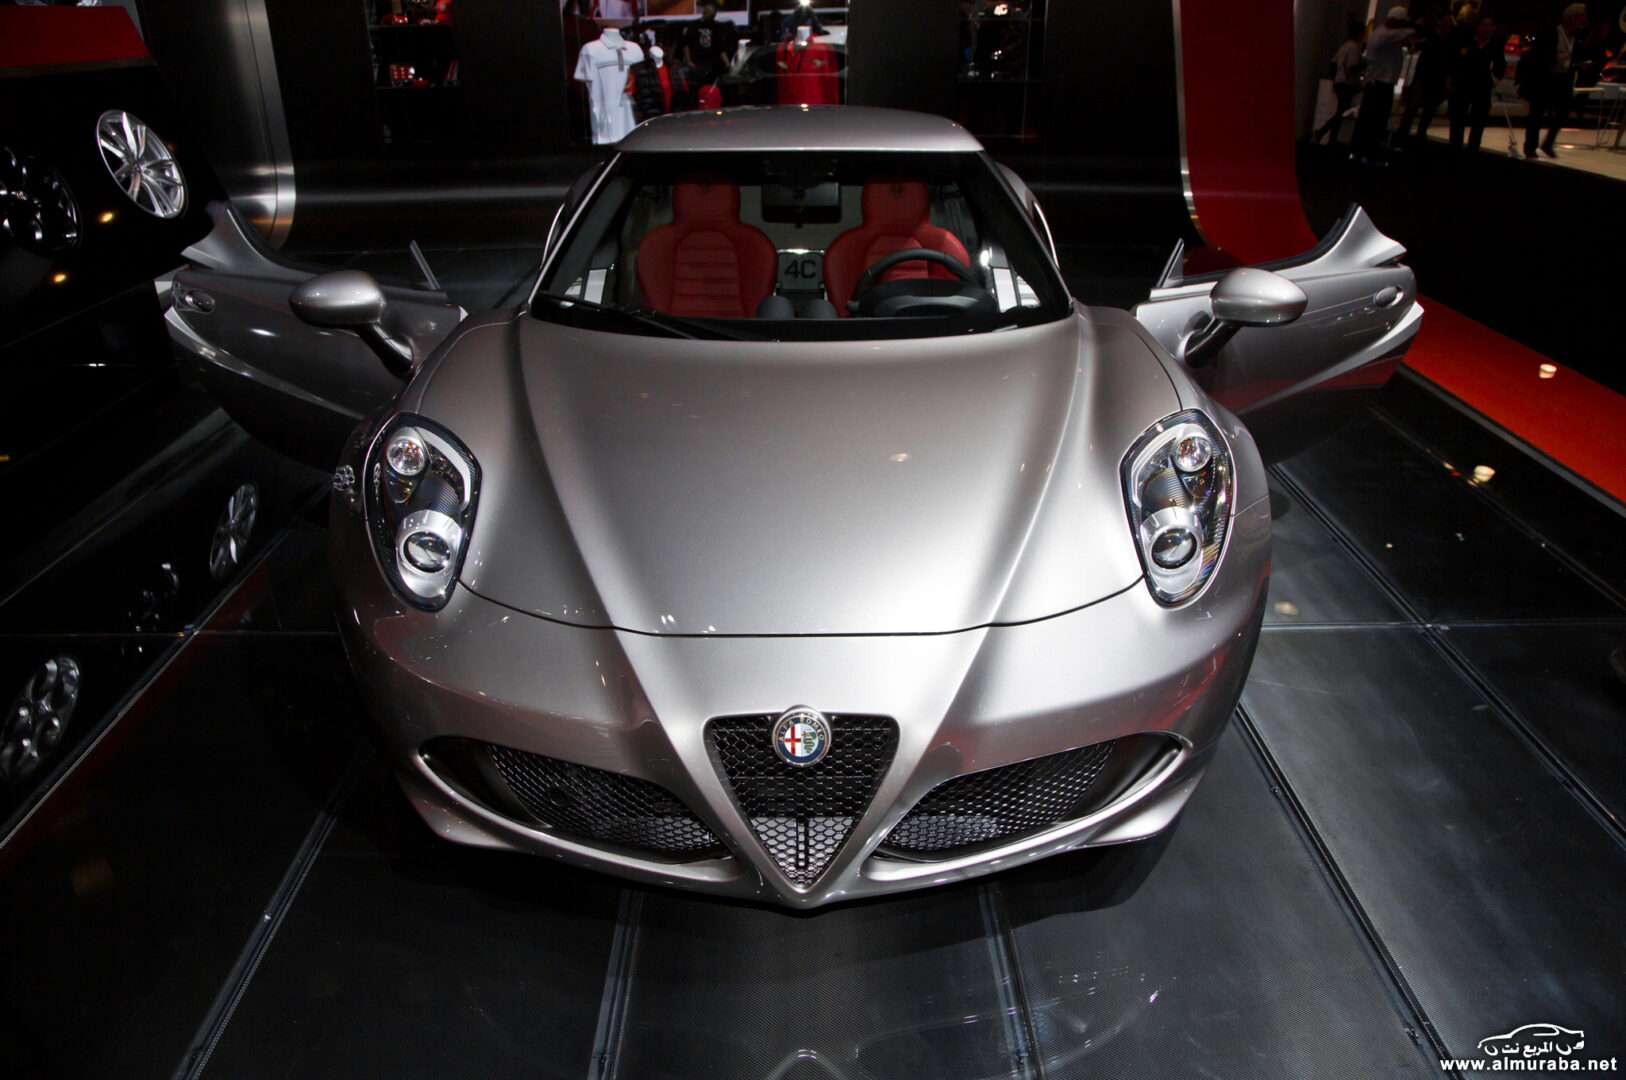 http---image.motortrend.com-f-wot-1404_2015_alfa_romeo_4c_launch_edition_arrives_this_june-72848034-2015-Alfa-Romeo-4C-Launch-Edition-front-end-02